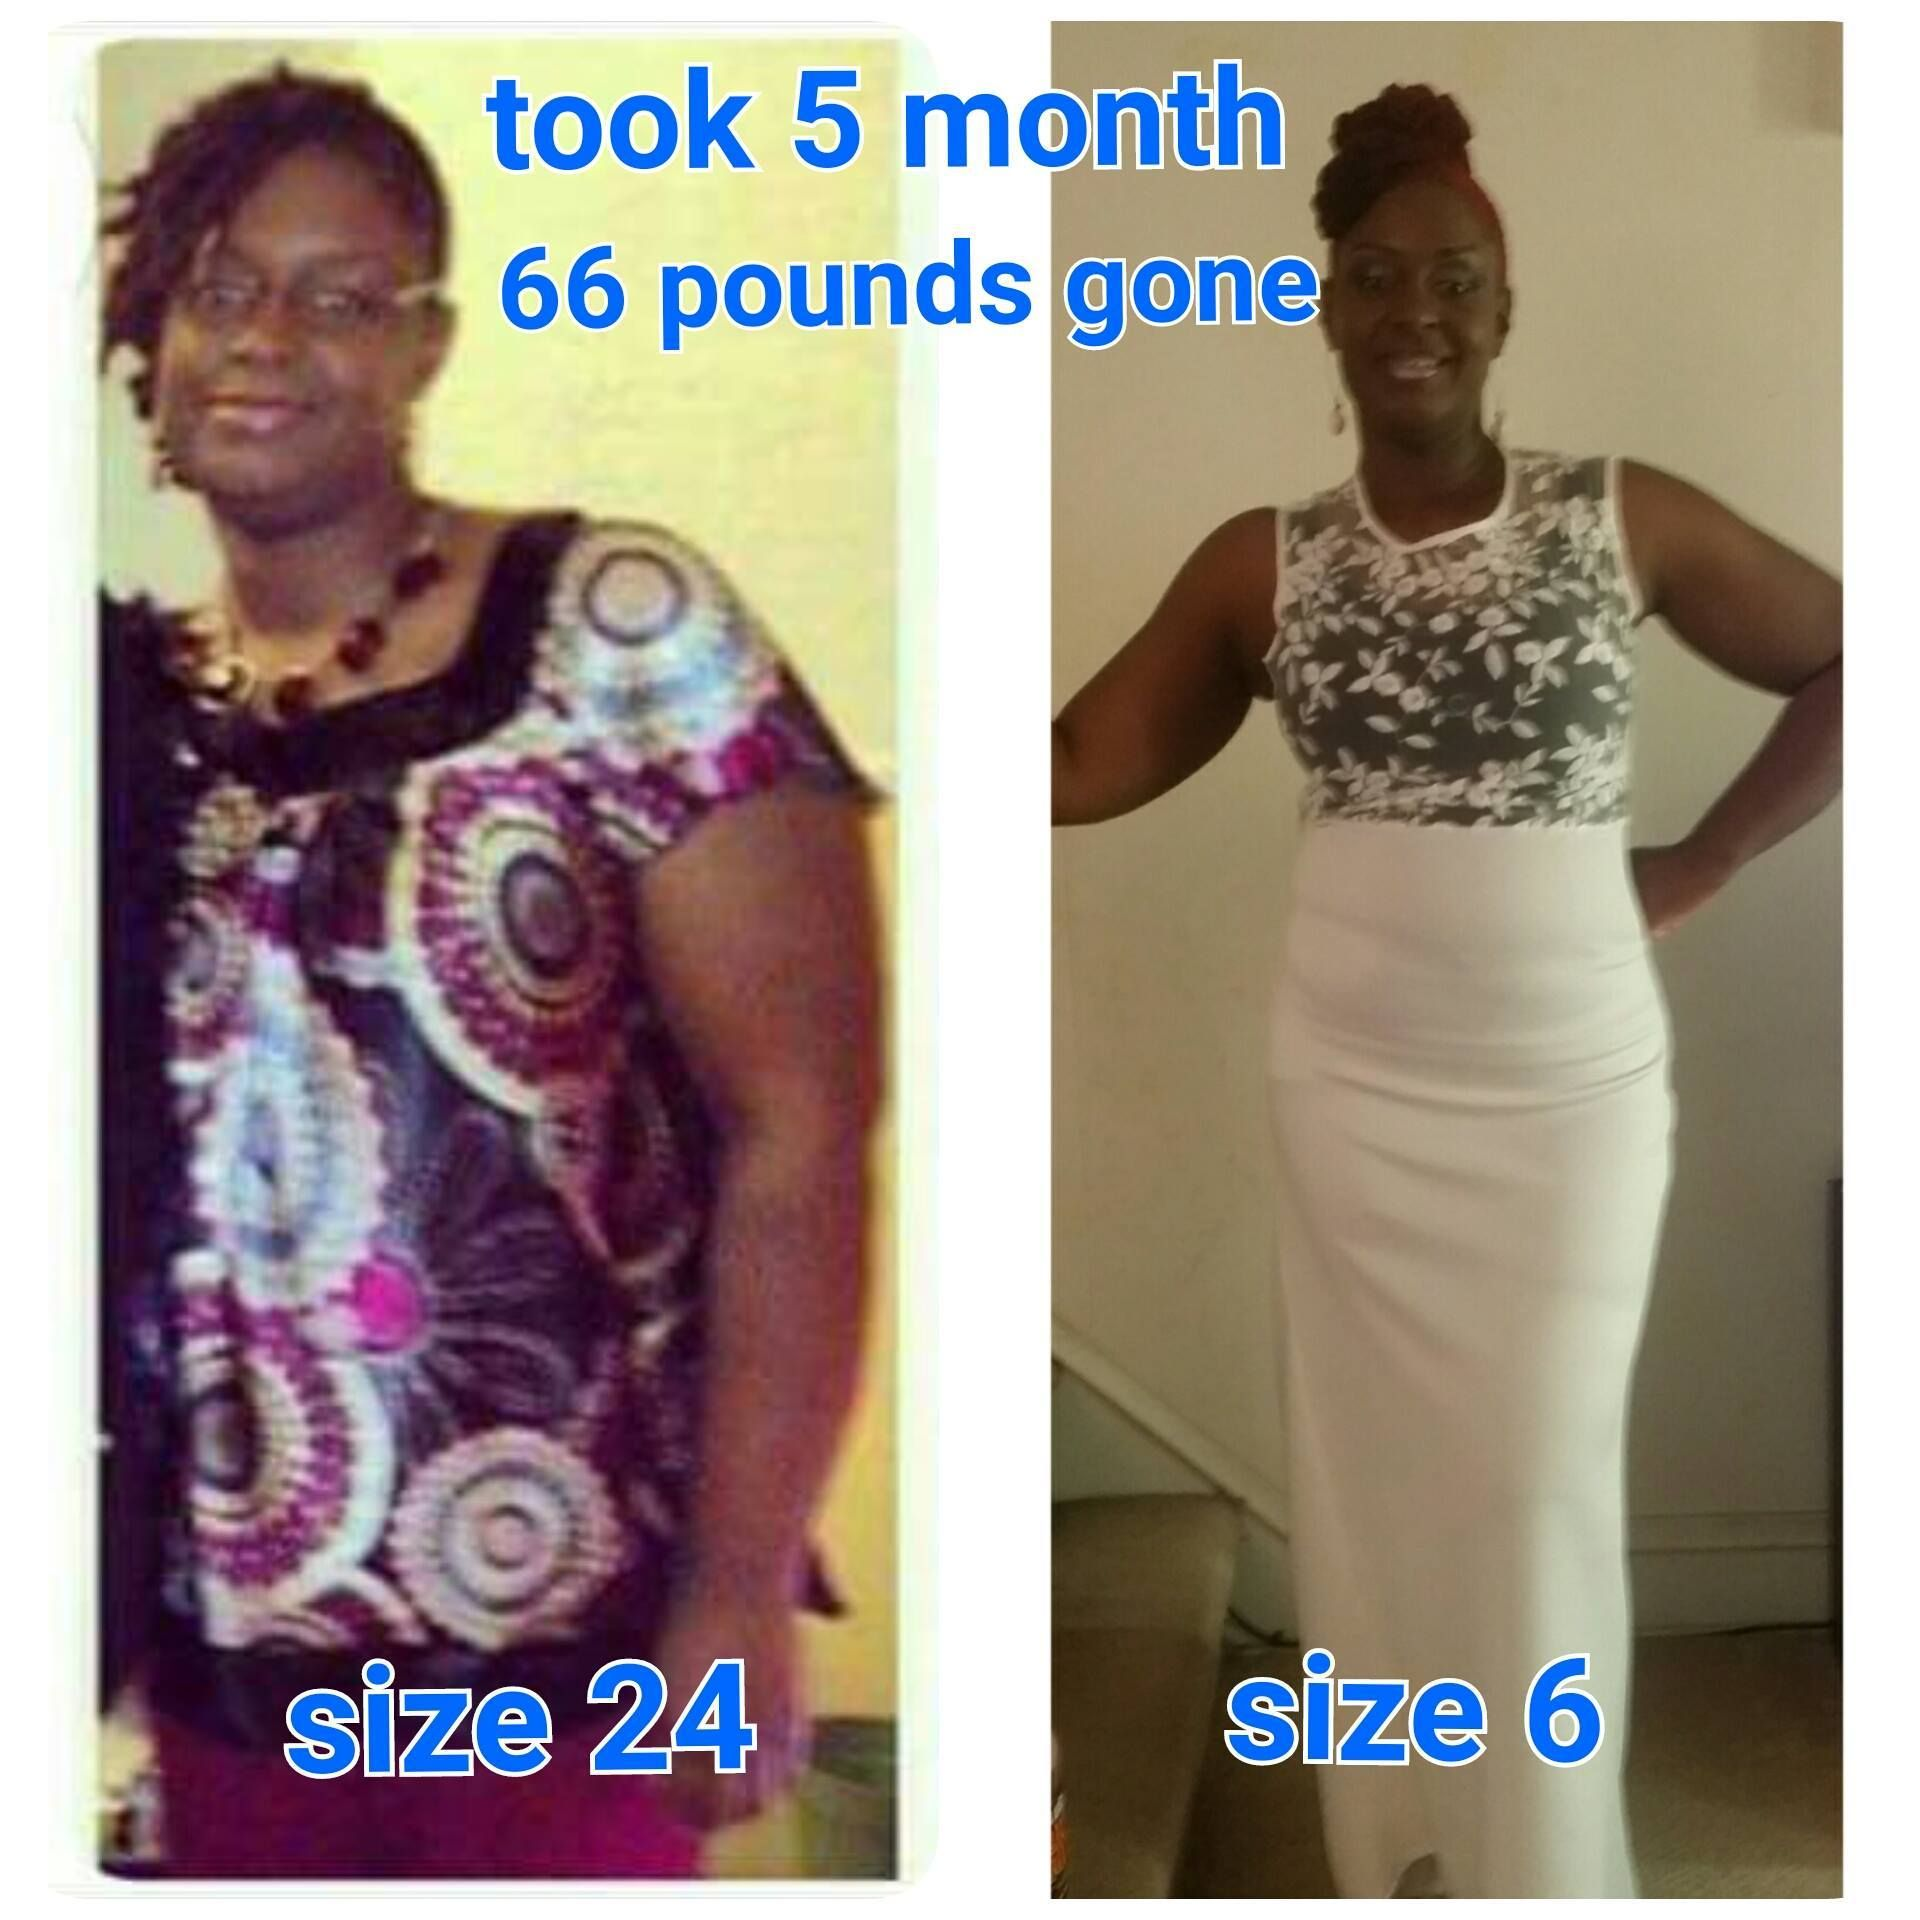 Looking good - Congratulations Karen H - Five month journey! Get started on your journey to a healthier you order Nutraburst, NRG, Delgada and HCG today! www.totallifechanges.com/DonnaAnderson shop to order